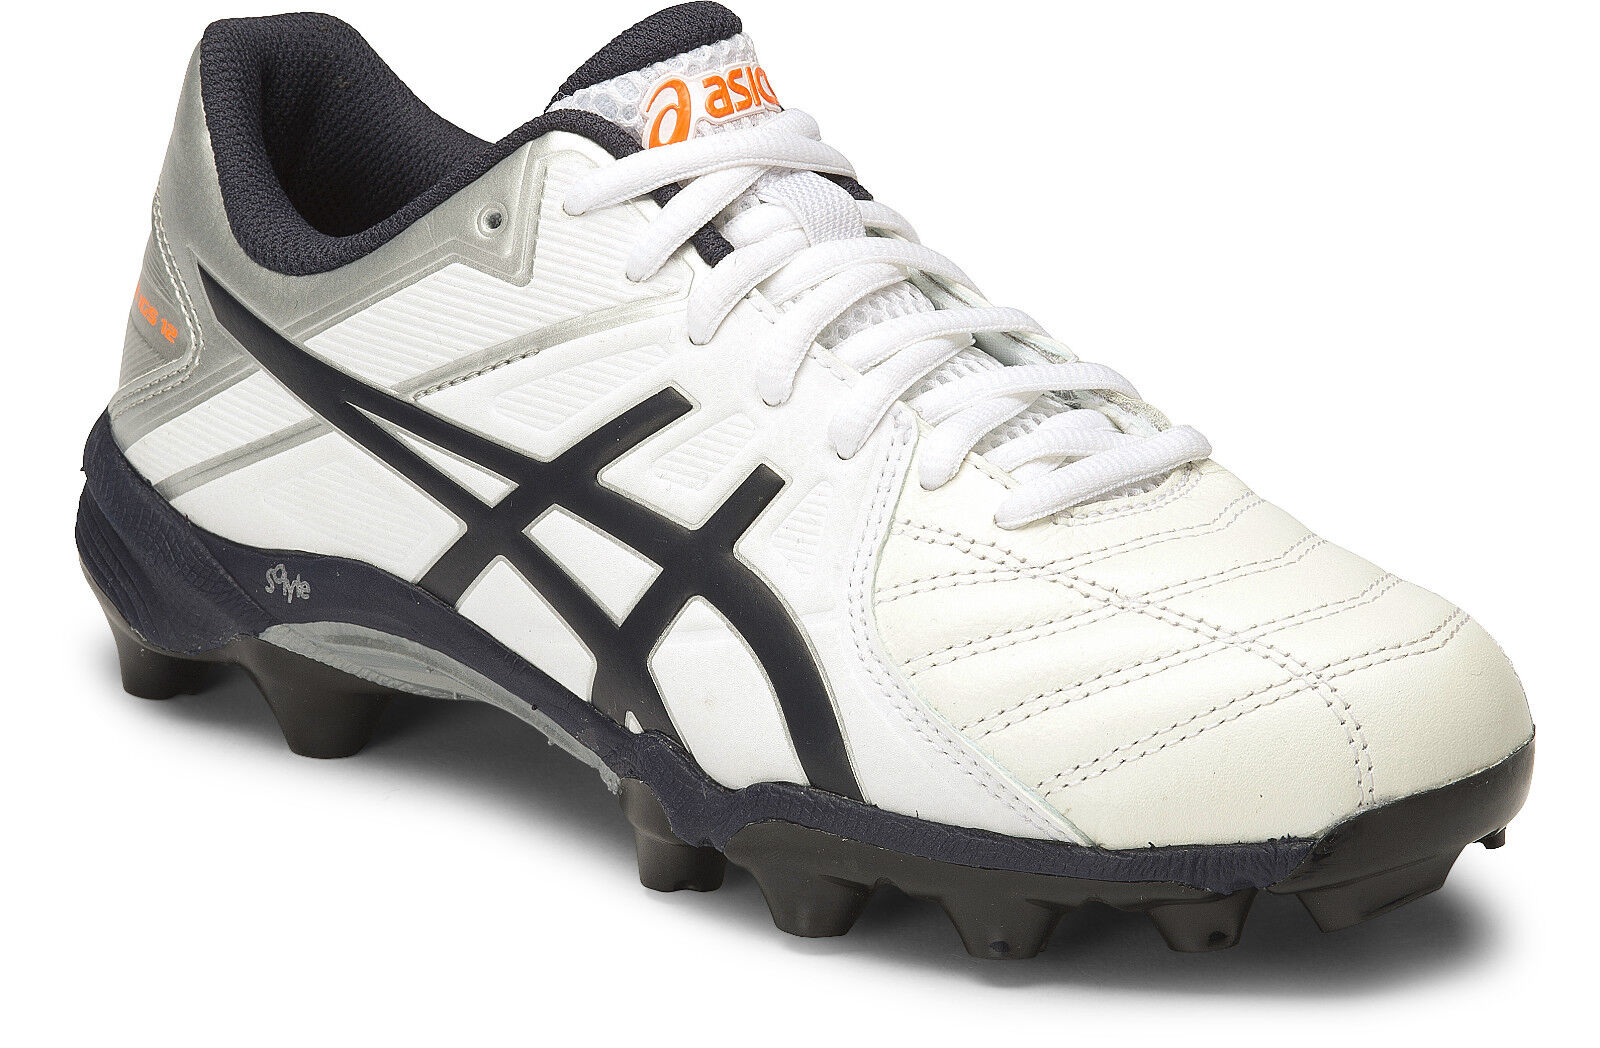 Asics Gel Lethal Ultimate GS 12 bambini Footbtutti sautope (0150) + gratuito Aus Delivery